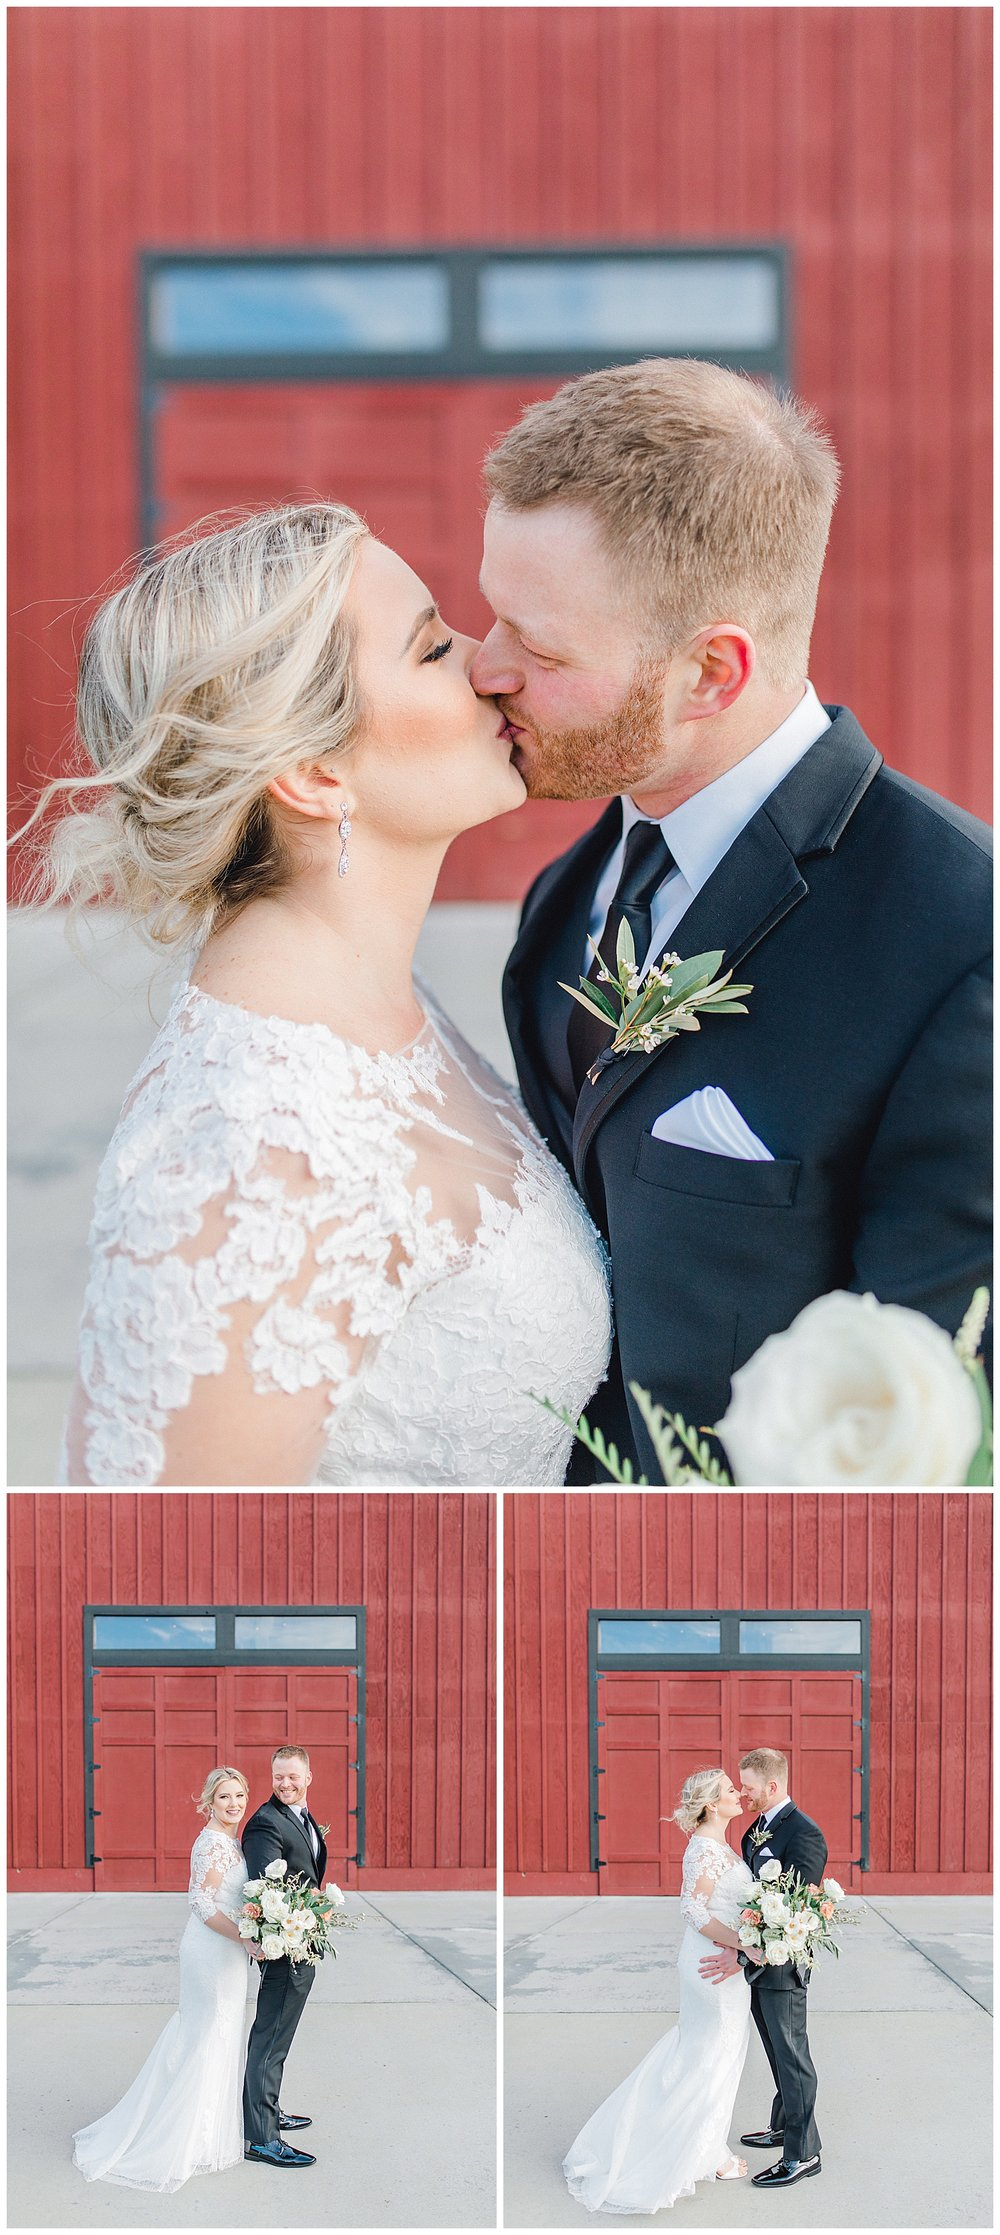 ERC-7346_A beautiful winter wedding in Snohomish, Washington at Thomas Family Farm was simply perfect.  This rustic and modern styled wedding was dripping with romance and photographed by Emma Rose Company, a pacific northwest wedding photographer..jpg